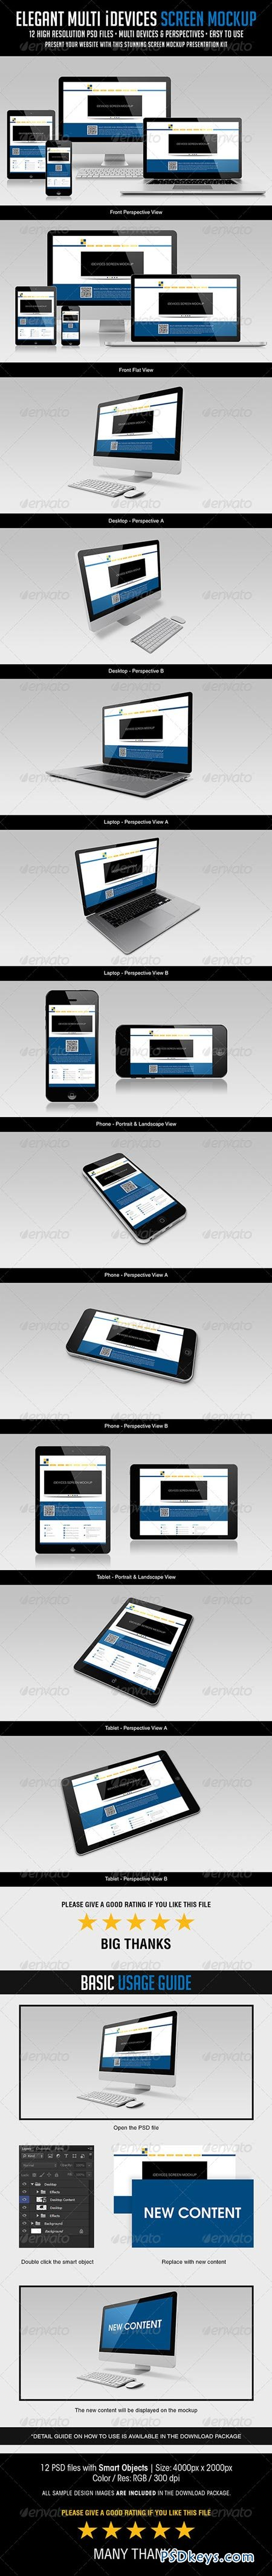 Elegant Multi iDevices Screen Mockup 7228412